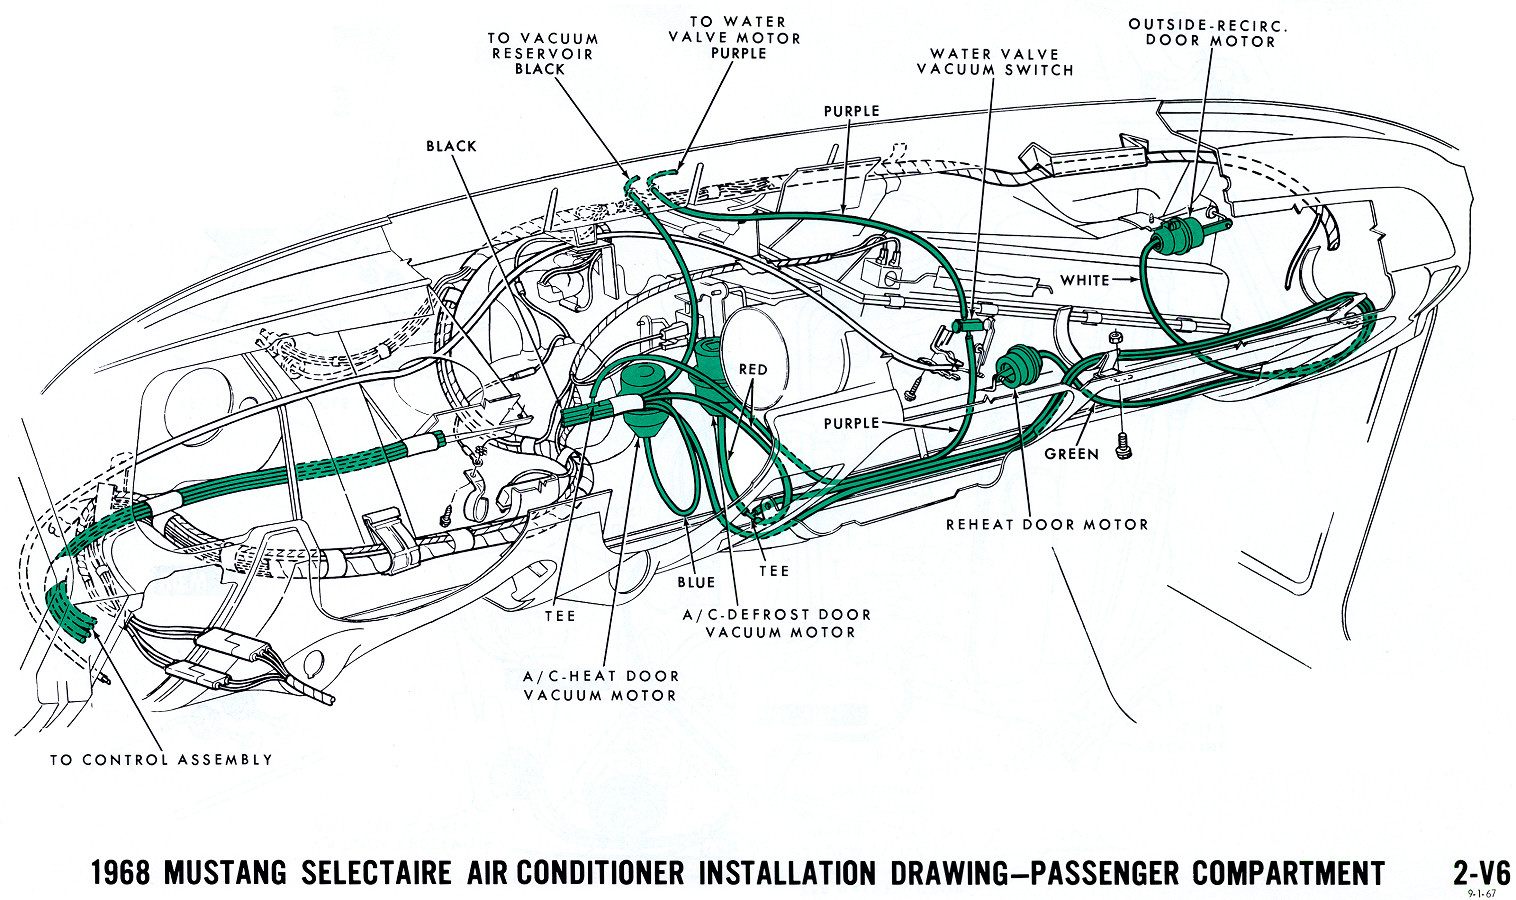 1968 Mustang Wiring Diagrams And Vacuum Schematics Average Joe 86 Harness Diagram Air Conditioning Interior